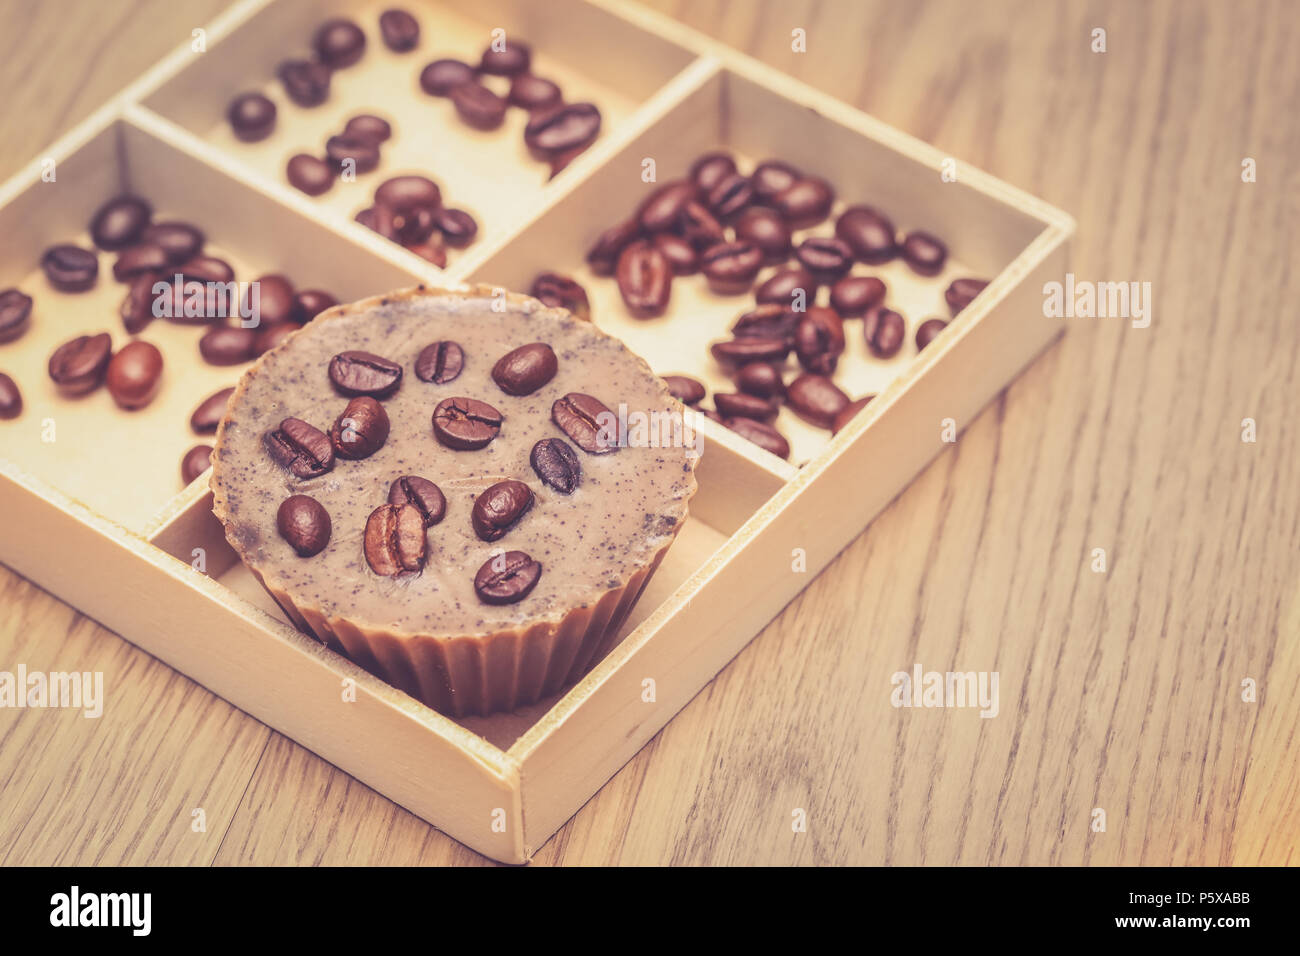 Homemade coffee soap with coffee beans in a wooden box - Stock Image